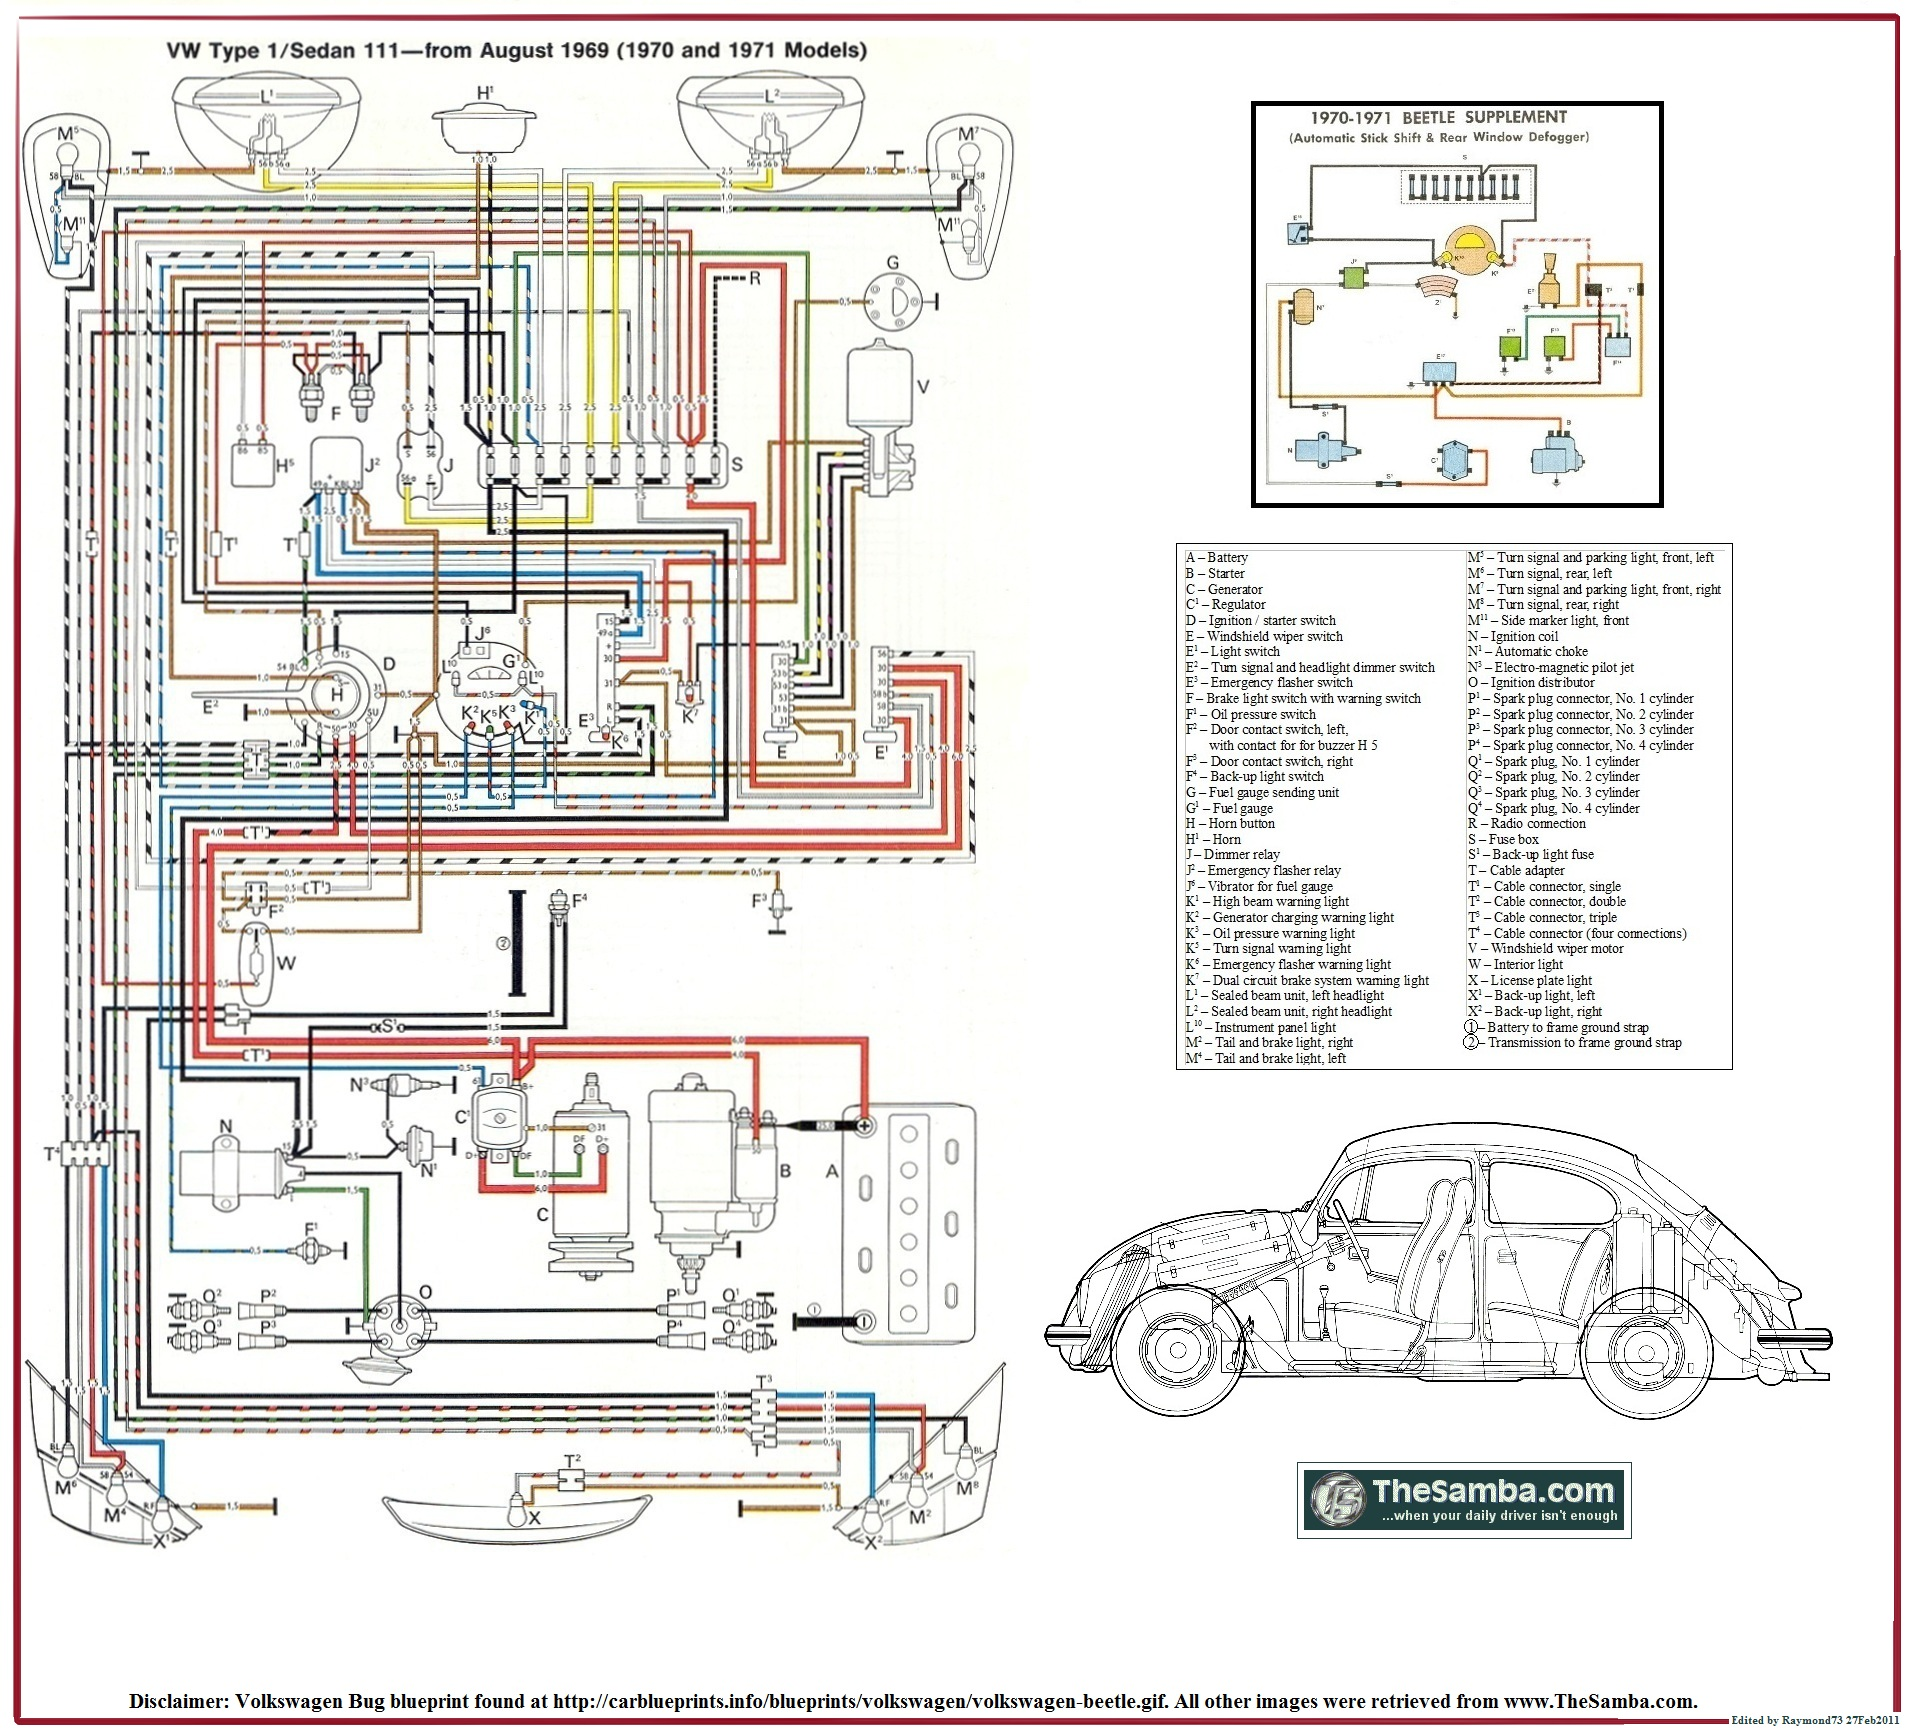 1970_VW_Type_1_Poster thesamba com beetle late model super 1968 up view topic wiring diagram 69 vw beetle at suagrazia.org